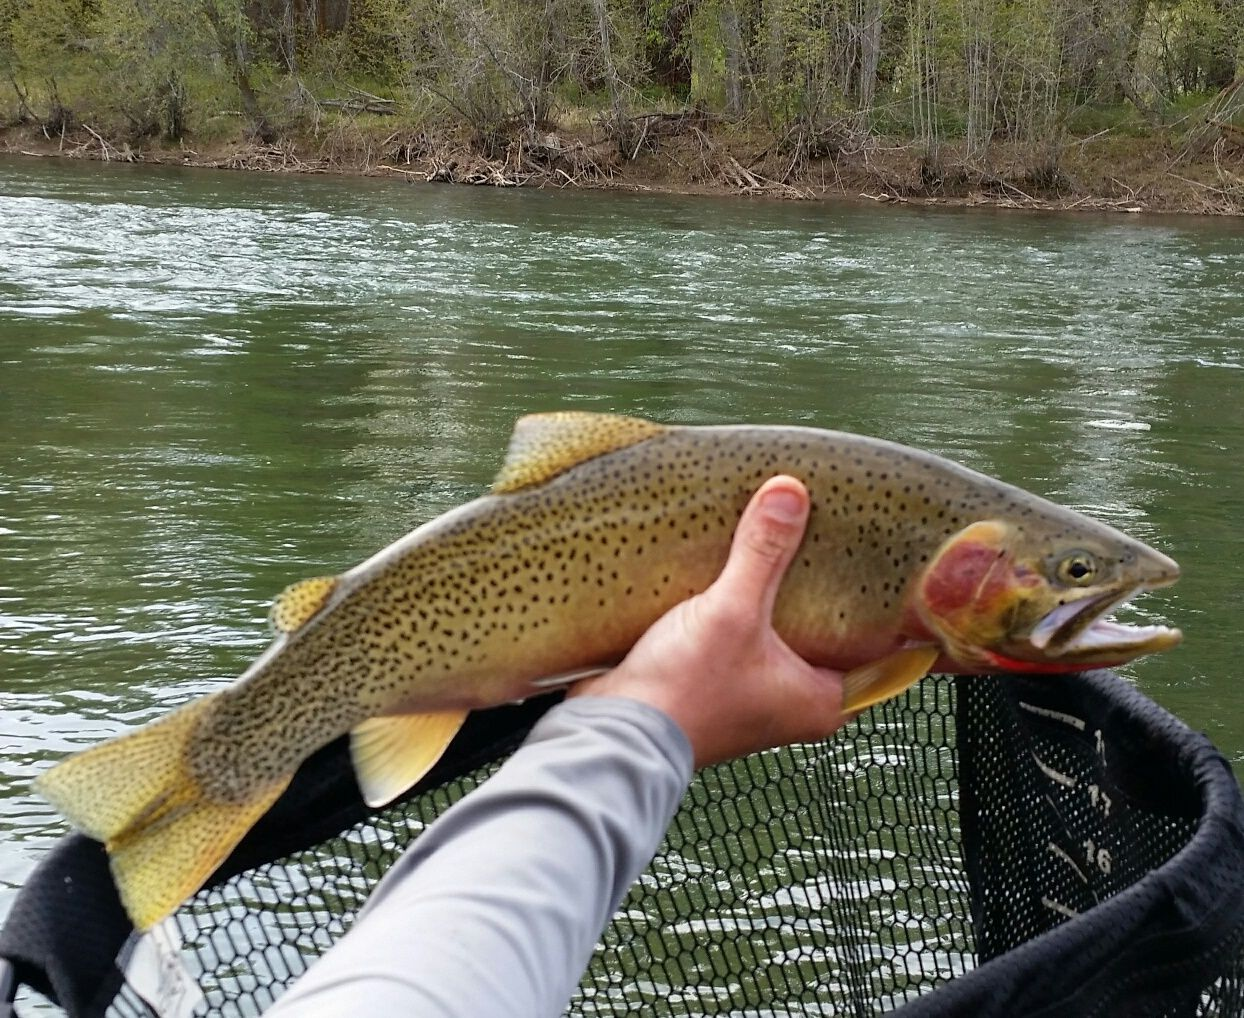 18 West Slope Cutthroat Trout Yakima River Washington Caught On A 1920 S Montague Radio Model Bamboo Fly Rod Bamboo Fly Rod Fishing Pics Cutthroat Trout